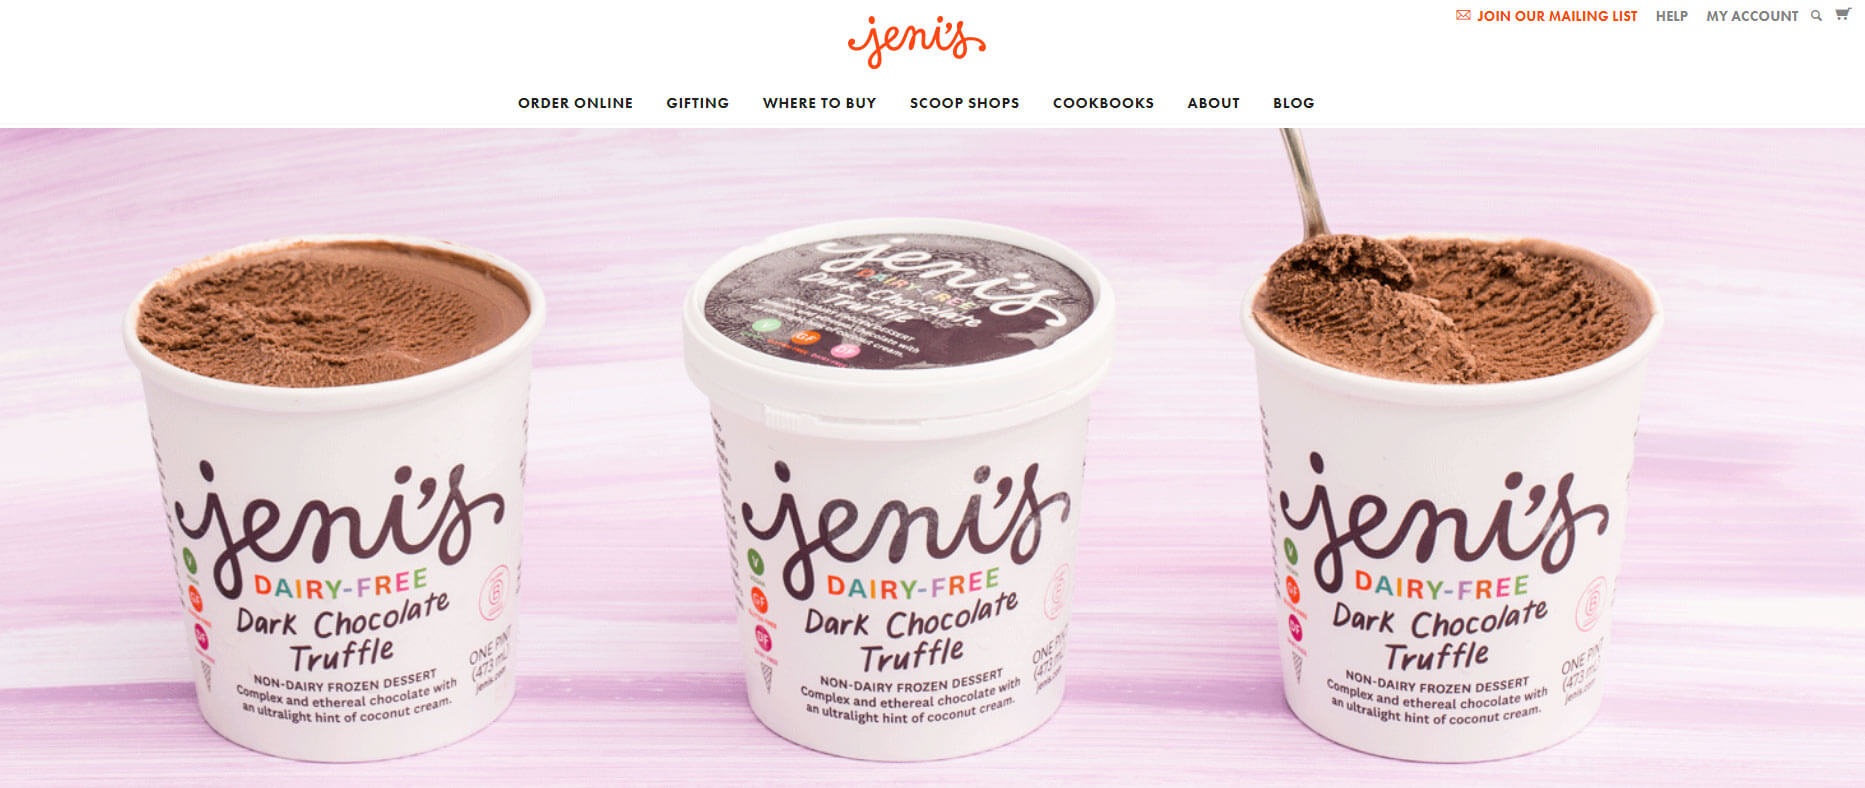 email-list-Opt-in-in-header-Jeni's